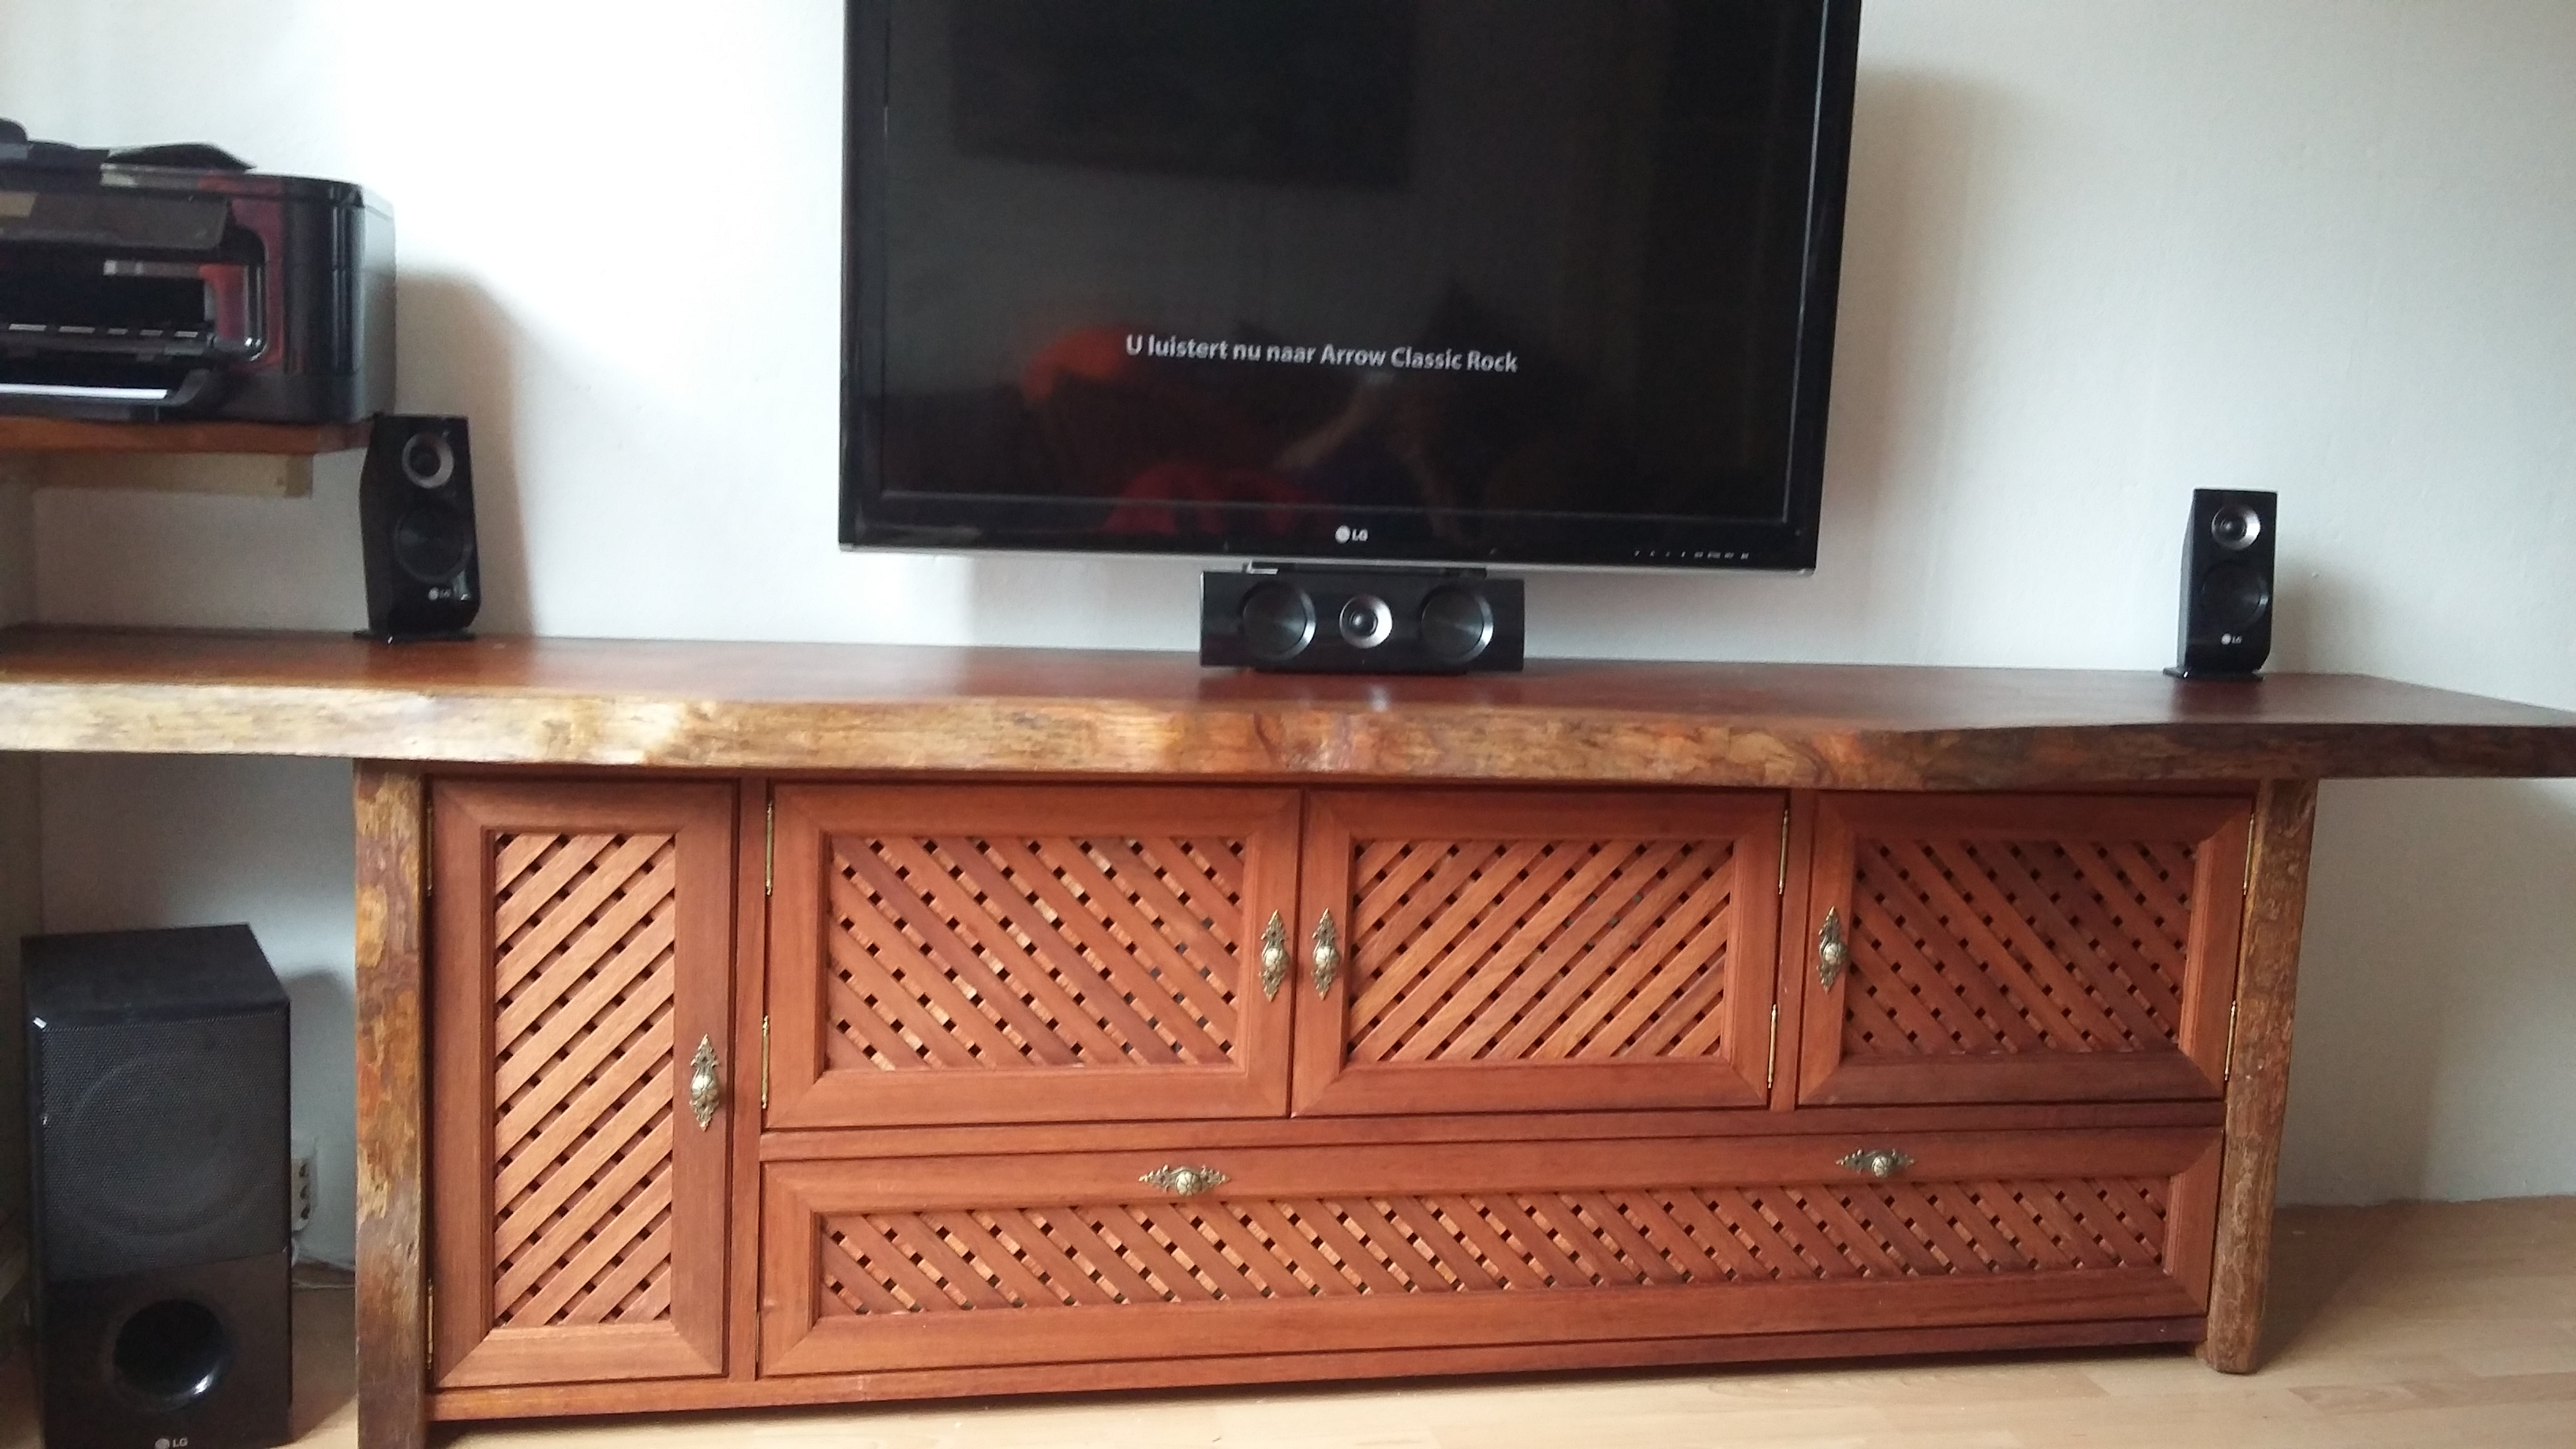 Mahonie Tv Meubel : Project t.v. kast mahonie t.o.f. friedrich beste in hout